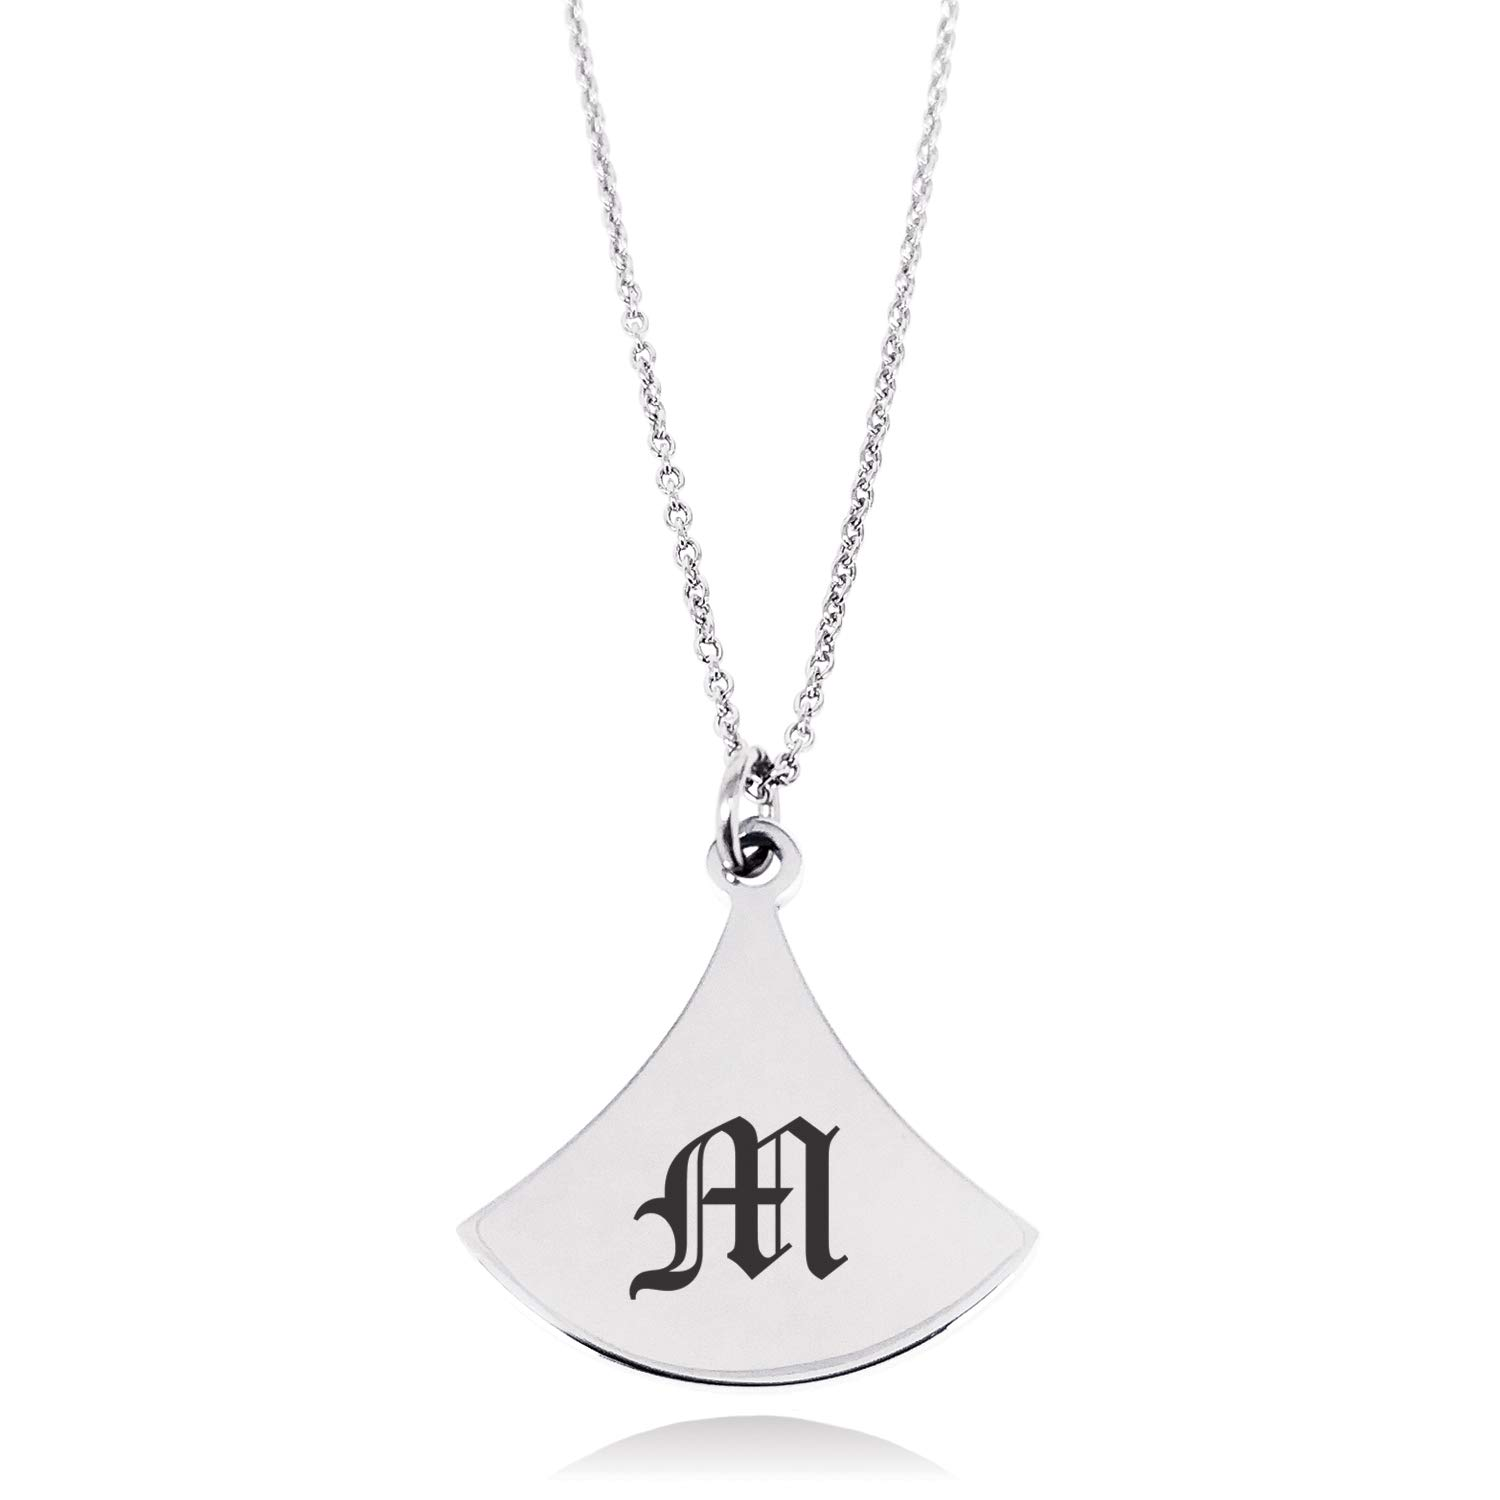 Stainless Steel Letter M Initial Old English Monogram Pendulum Curved Triangle Charm Pendant Necklace